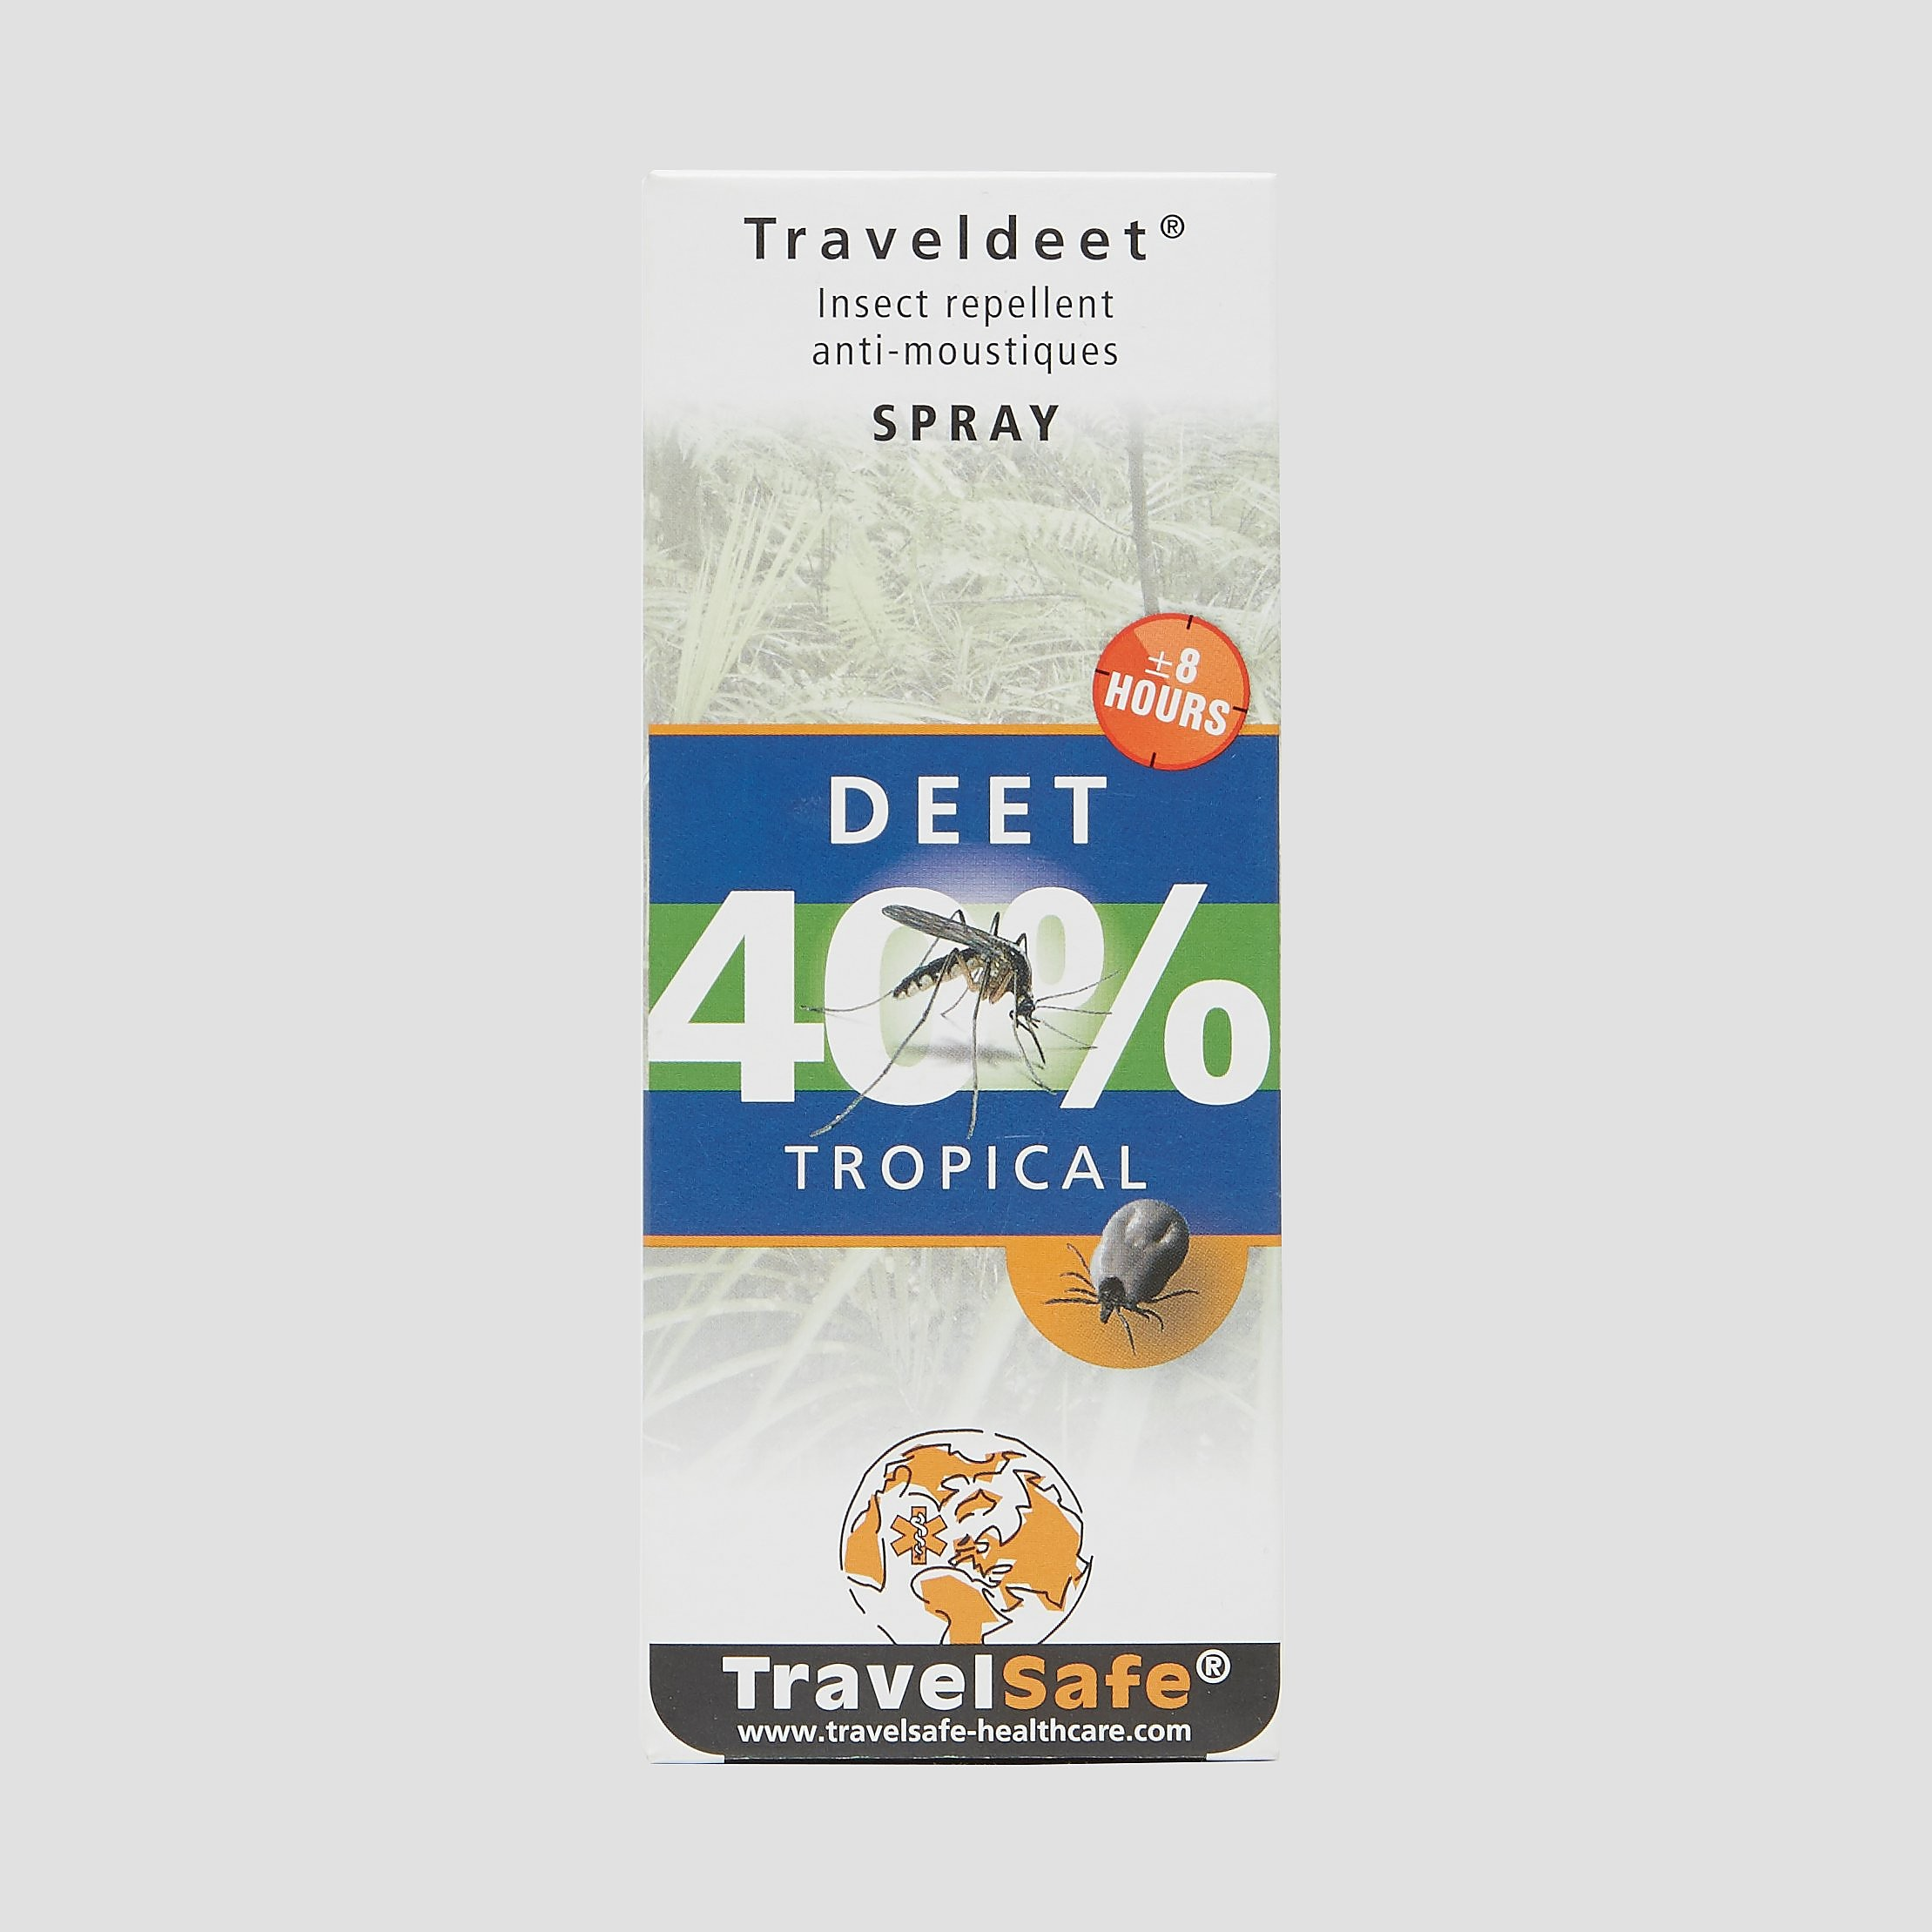 TRAVELSAFE TRAVELDEET 40 SPRAY